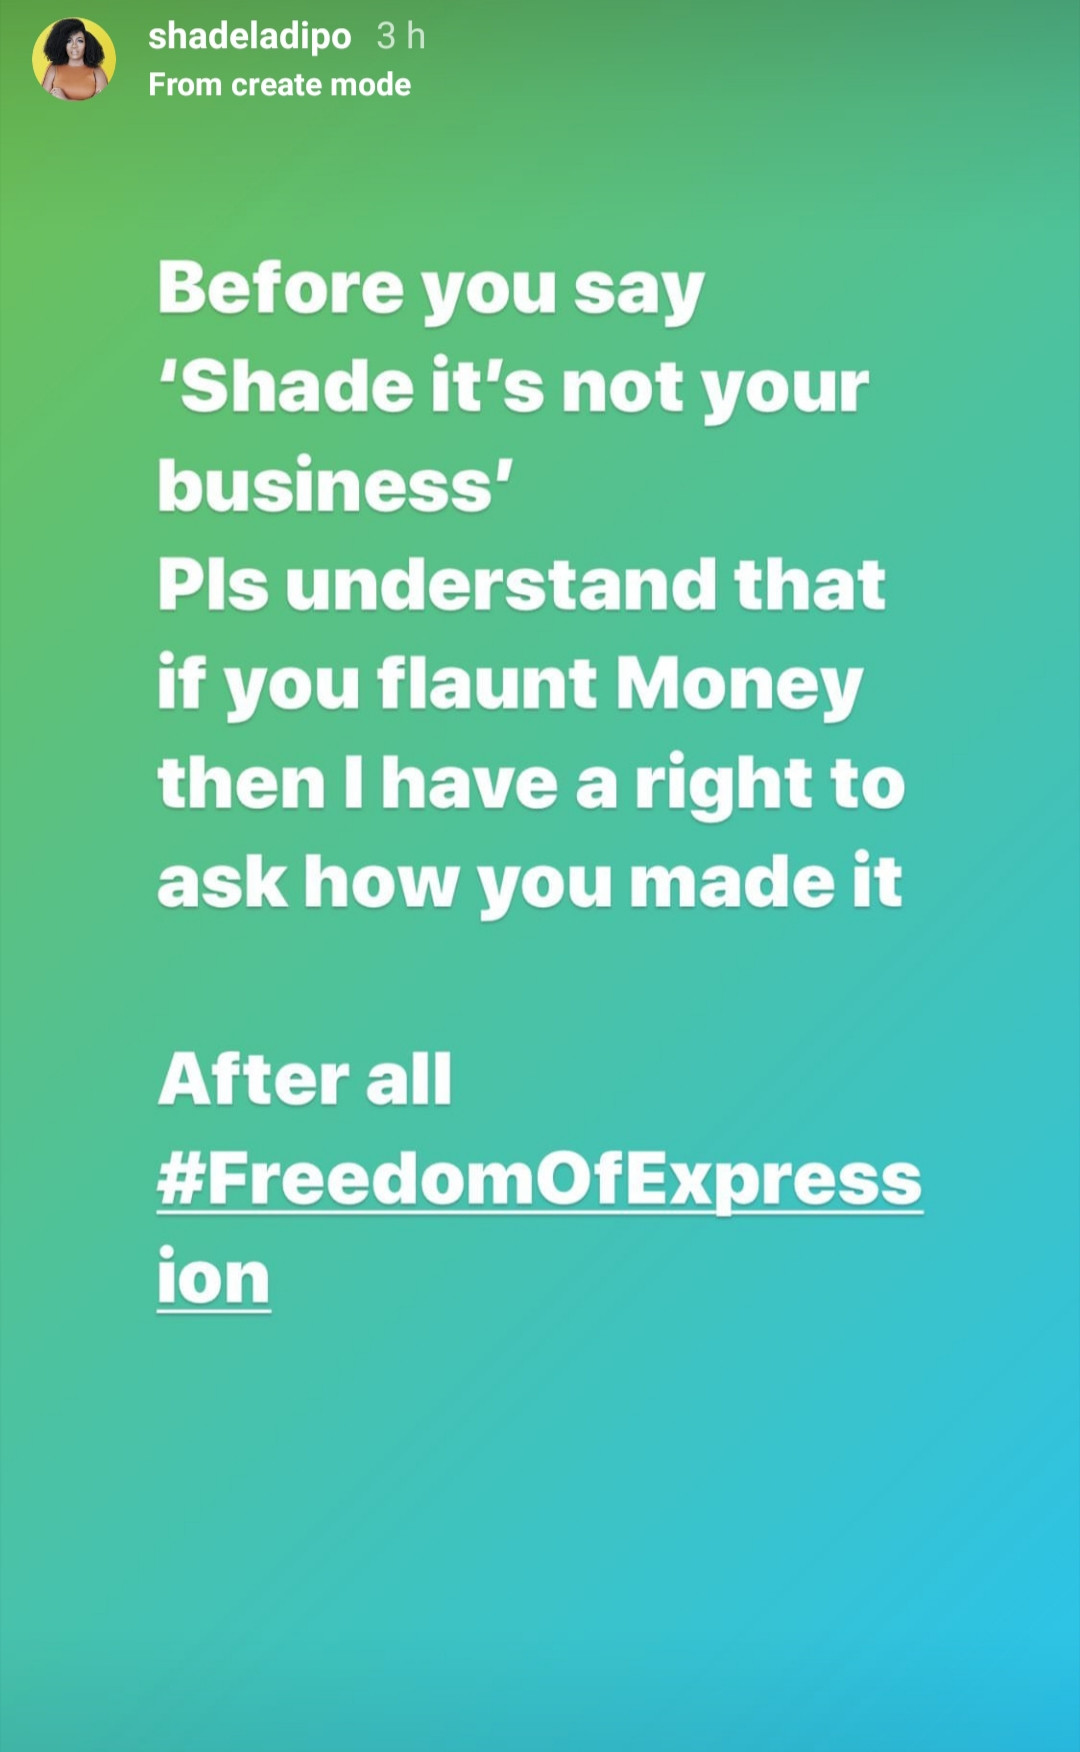 If you flaunt money, I have the right to ask how you made it -media personality, Shade Ladipo